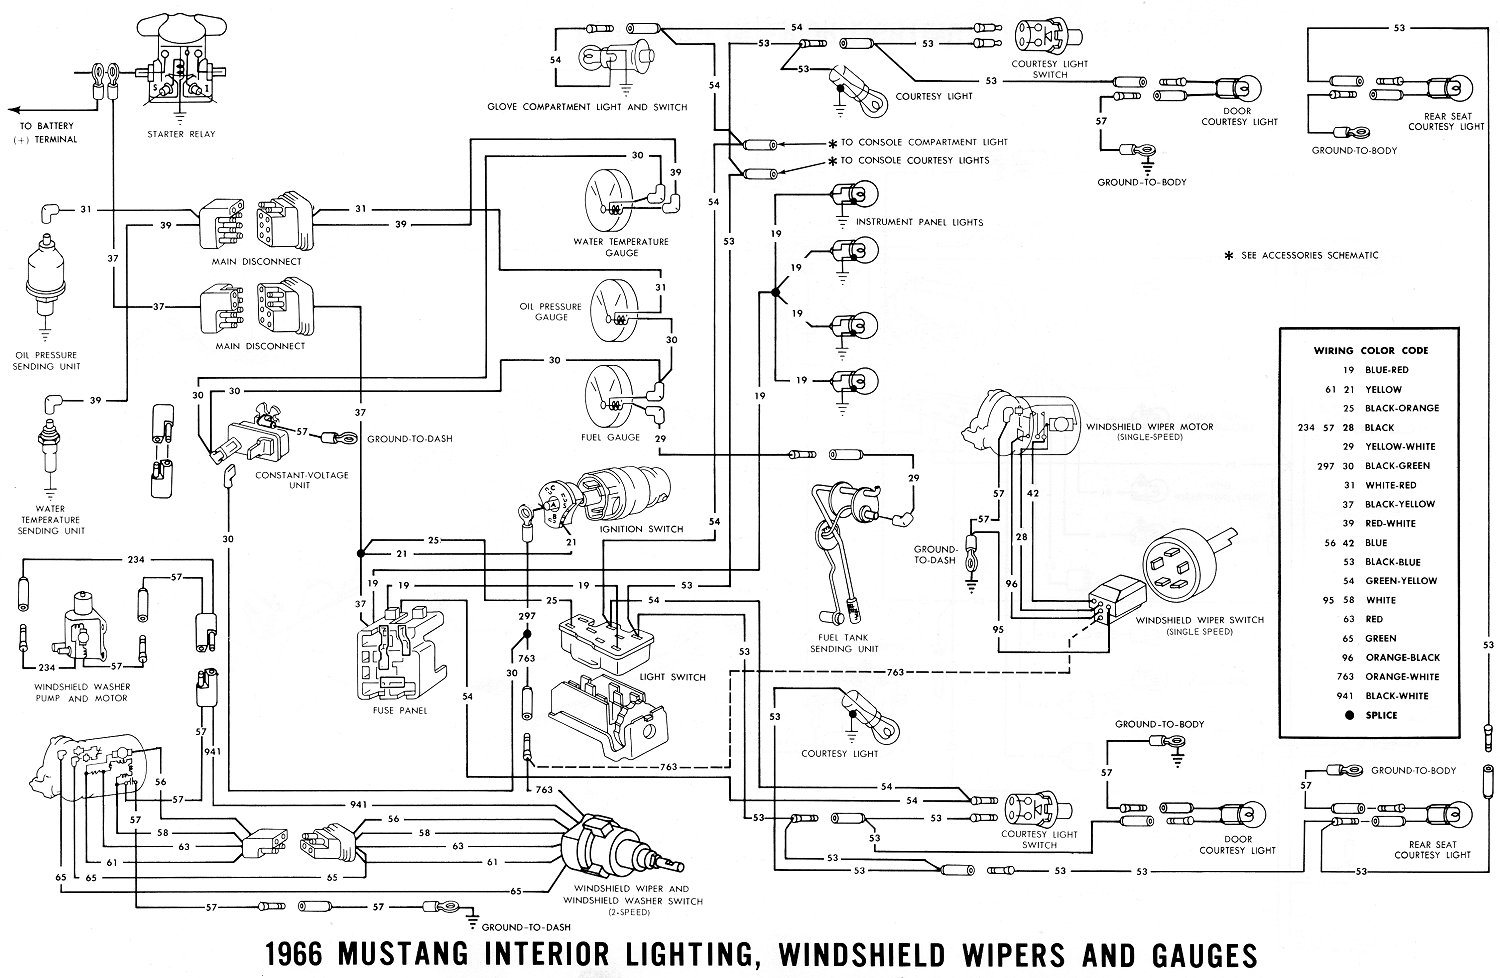 1966 Chevelle Wiper Motor Wiring Diagram besides Please Help Wiring Problem 1973 Dodge Charger 8670 as well How Does An Adjustable Steering Column Work furthermore Fireplace Details likewise Wiring Engine Charging Coil. on 73 dodge charger ignition wiring diagram